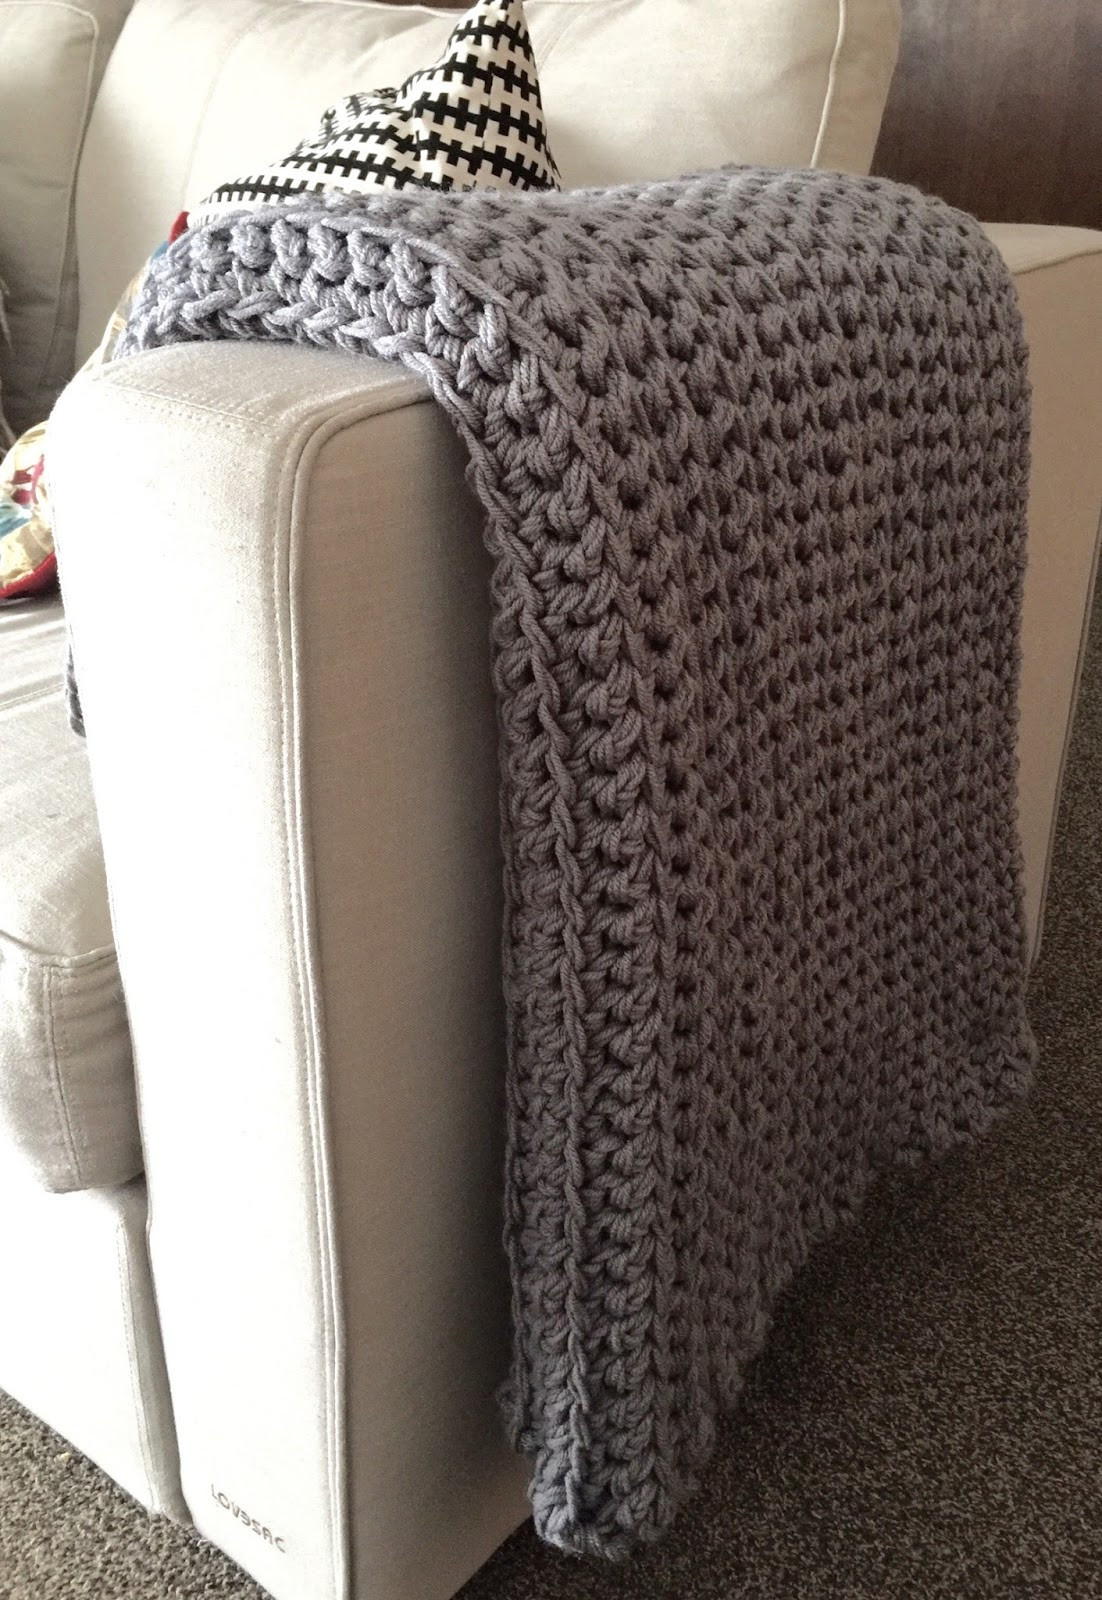 Crochet Throw Lovely Easy Crochet Afghan Iknits Of Luxury 41 Pics Crochet Throw